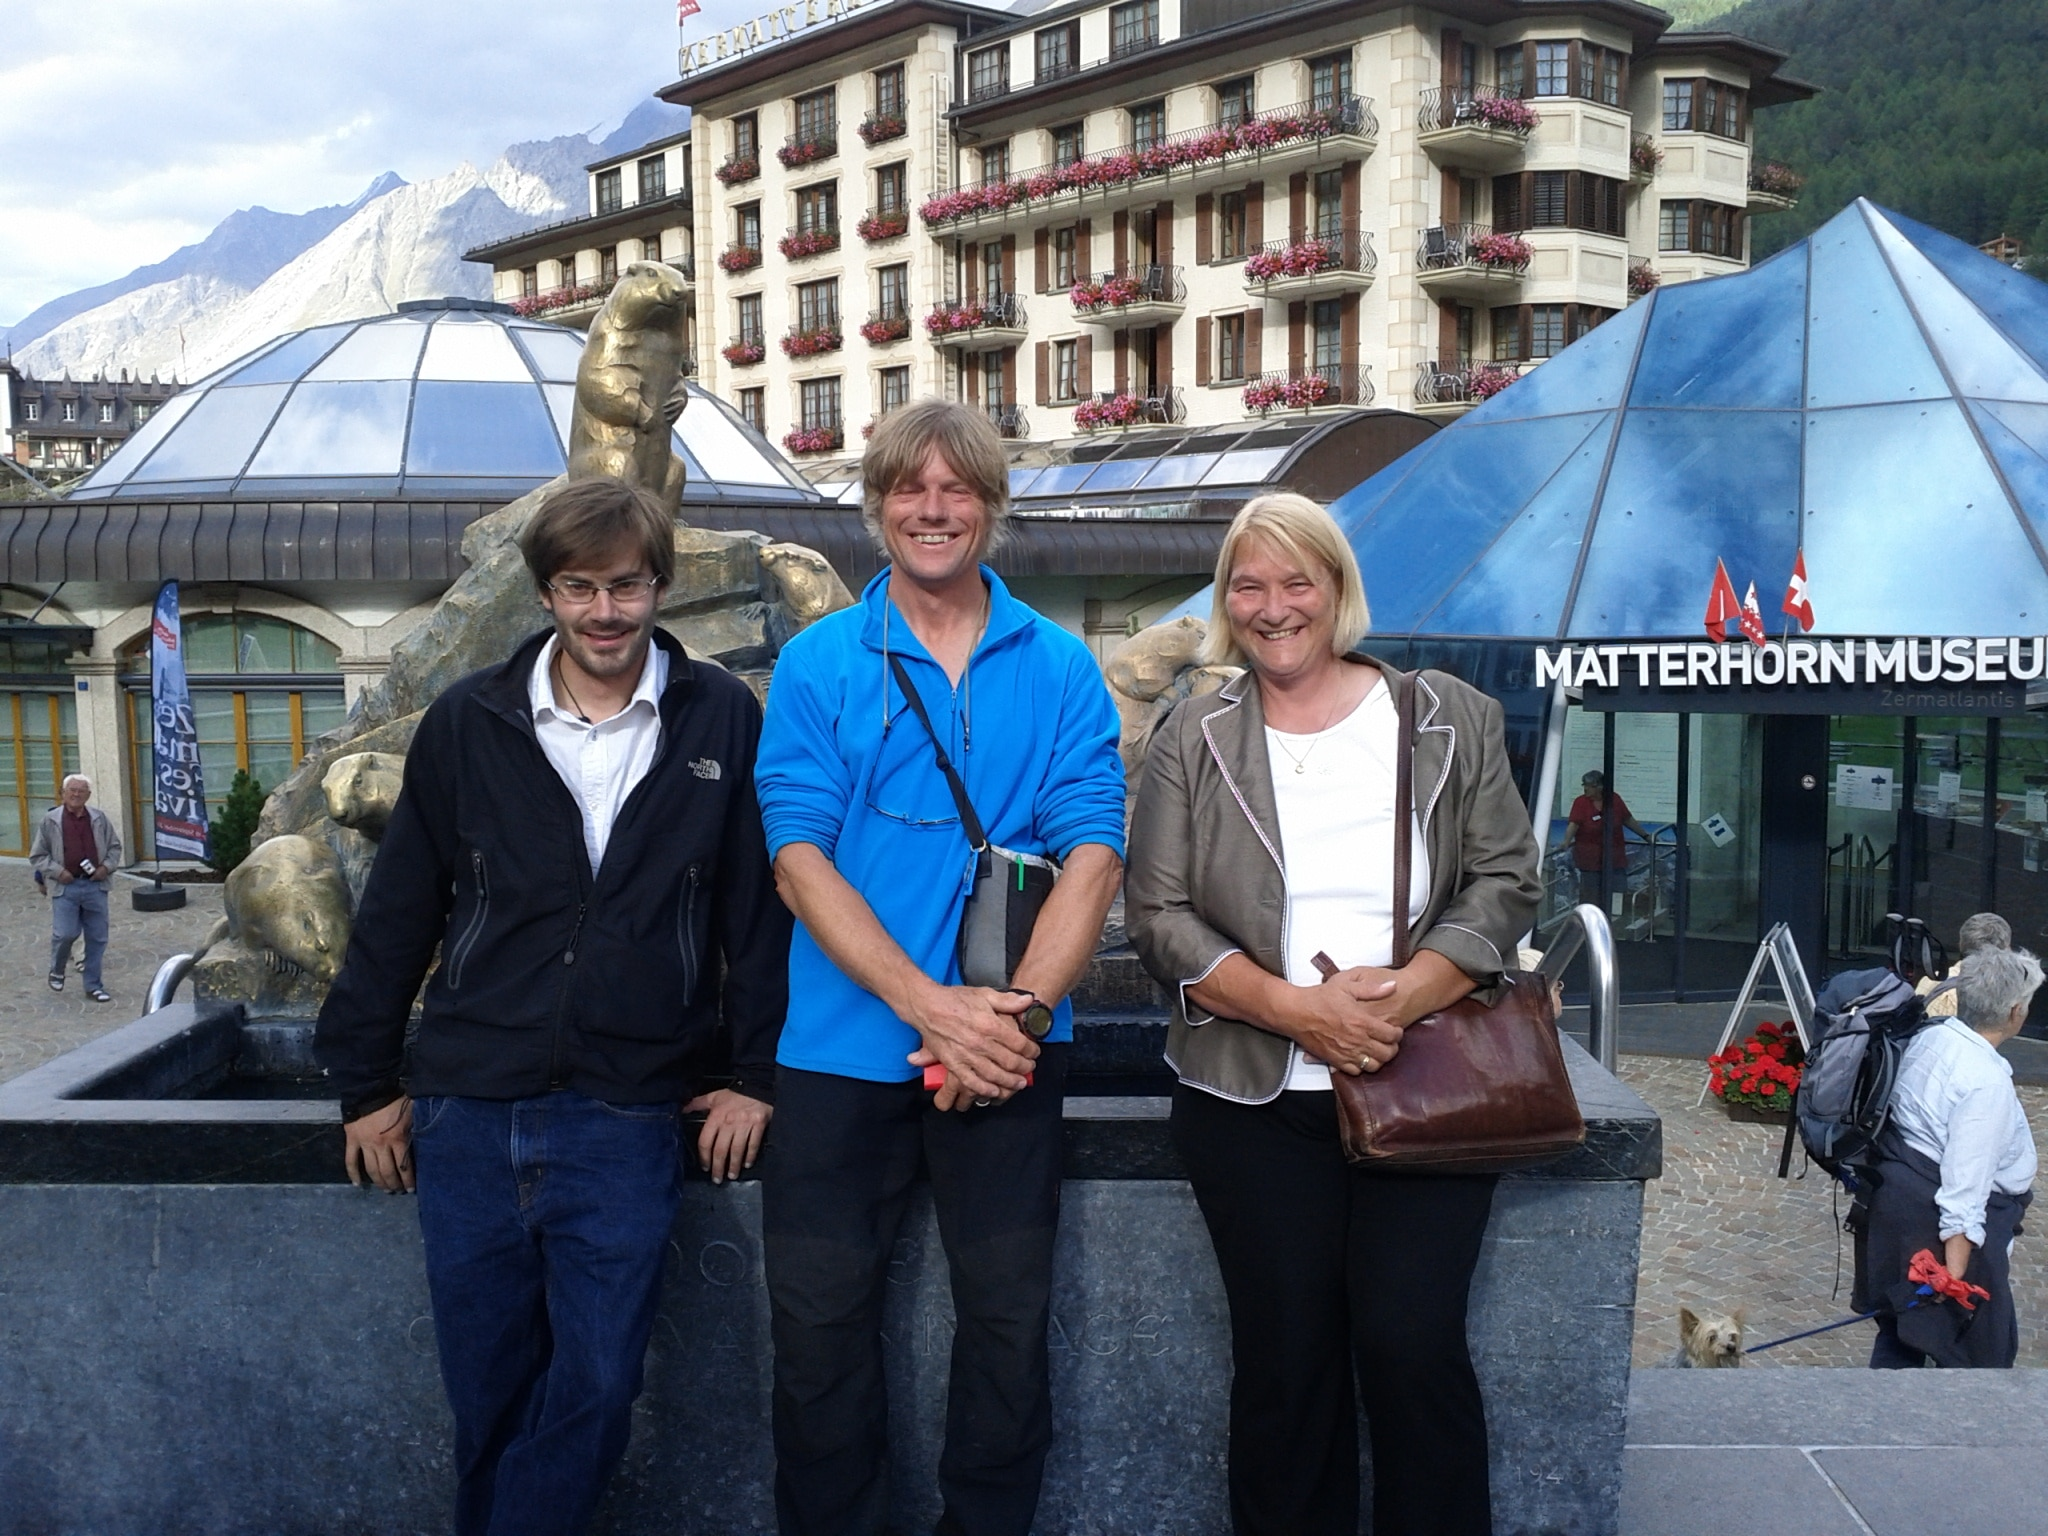 My tour guides through history, Nils Eggen and Edith Zweifel.